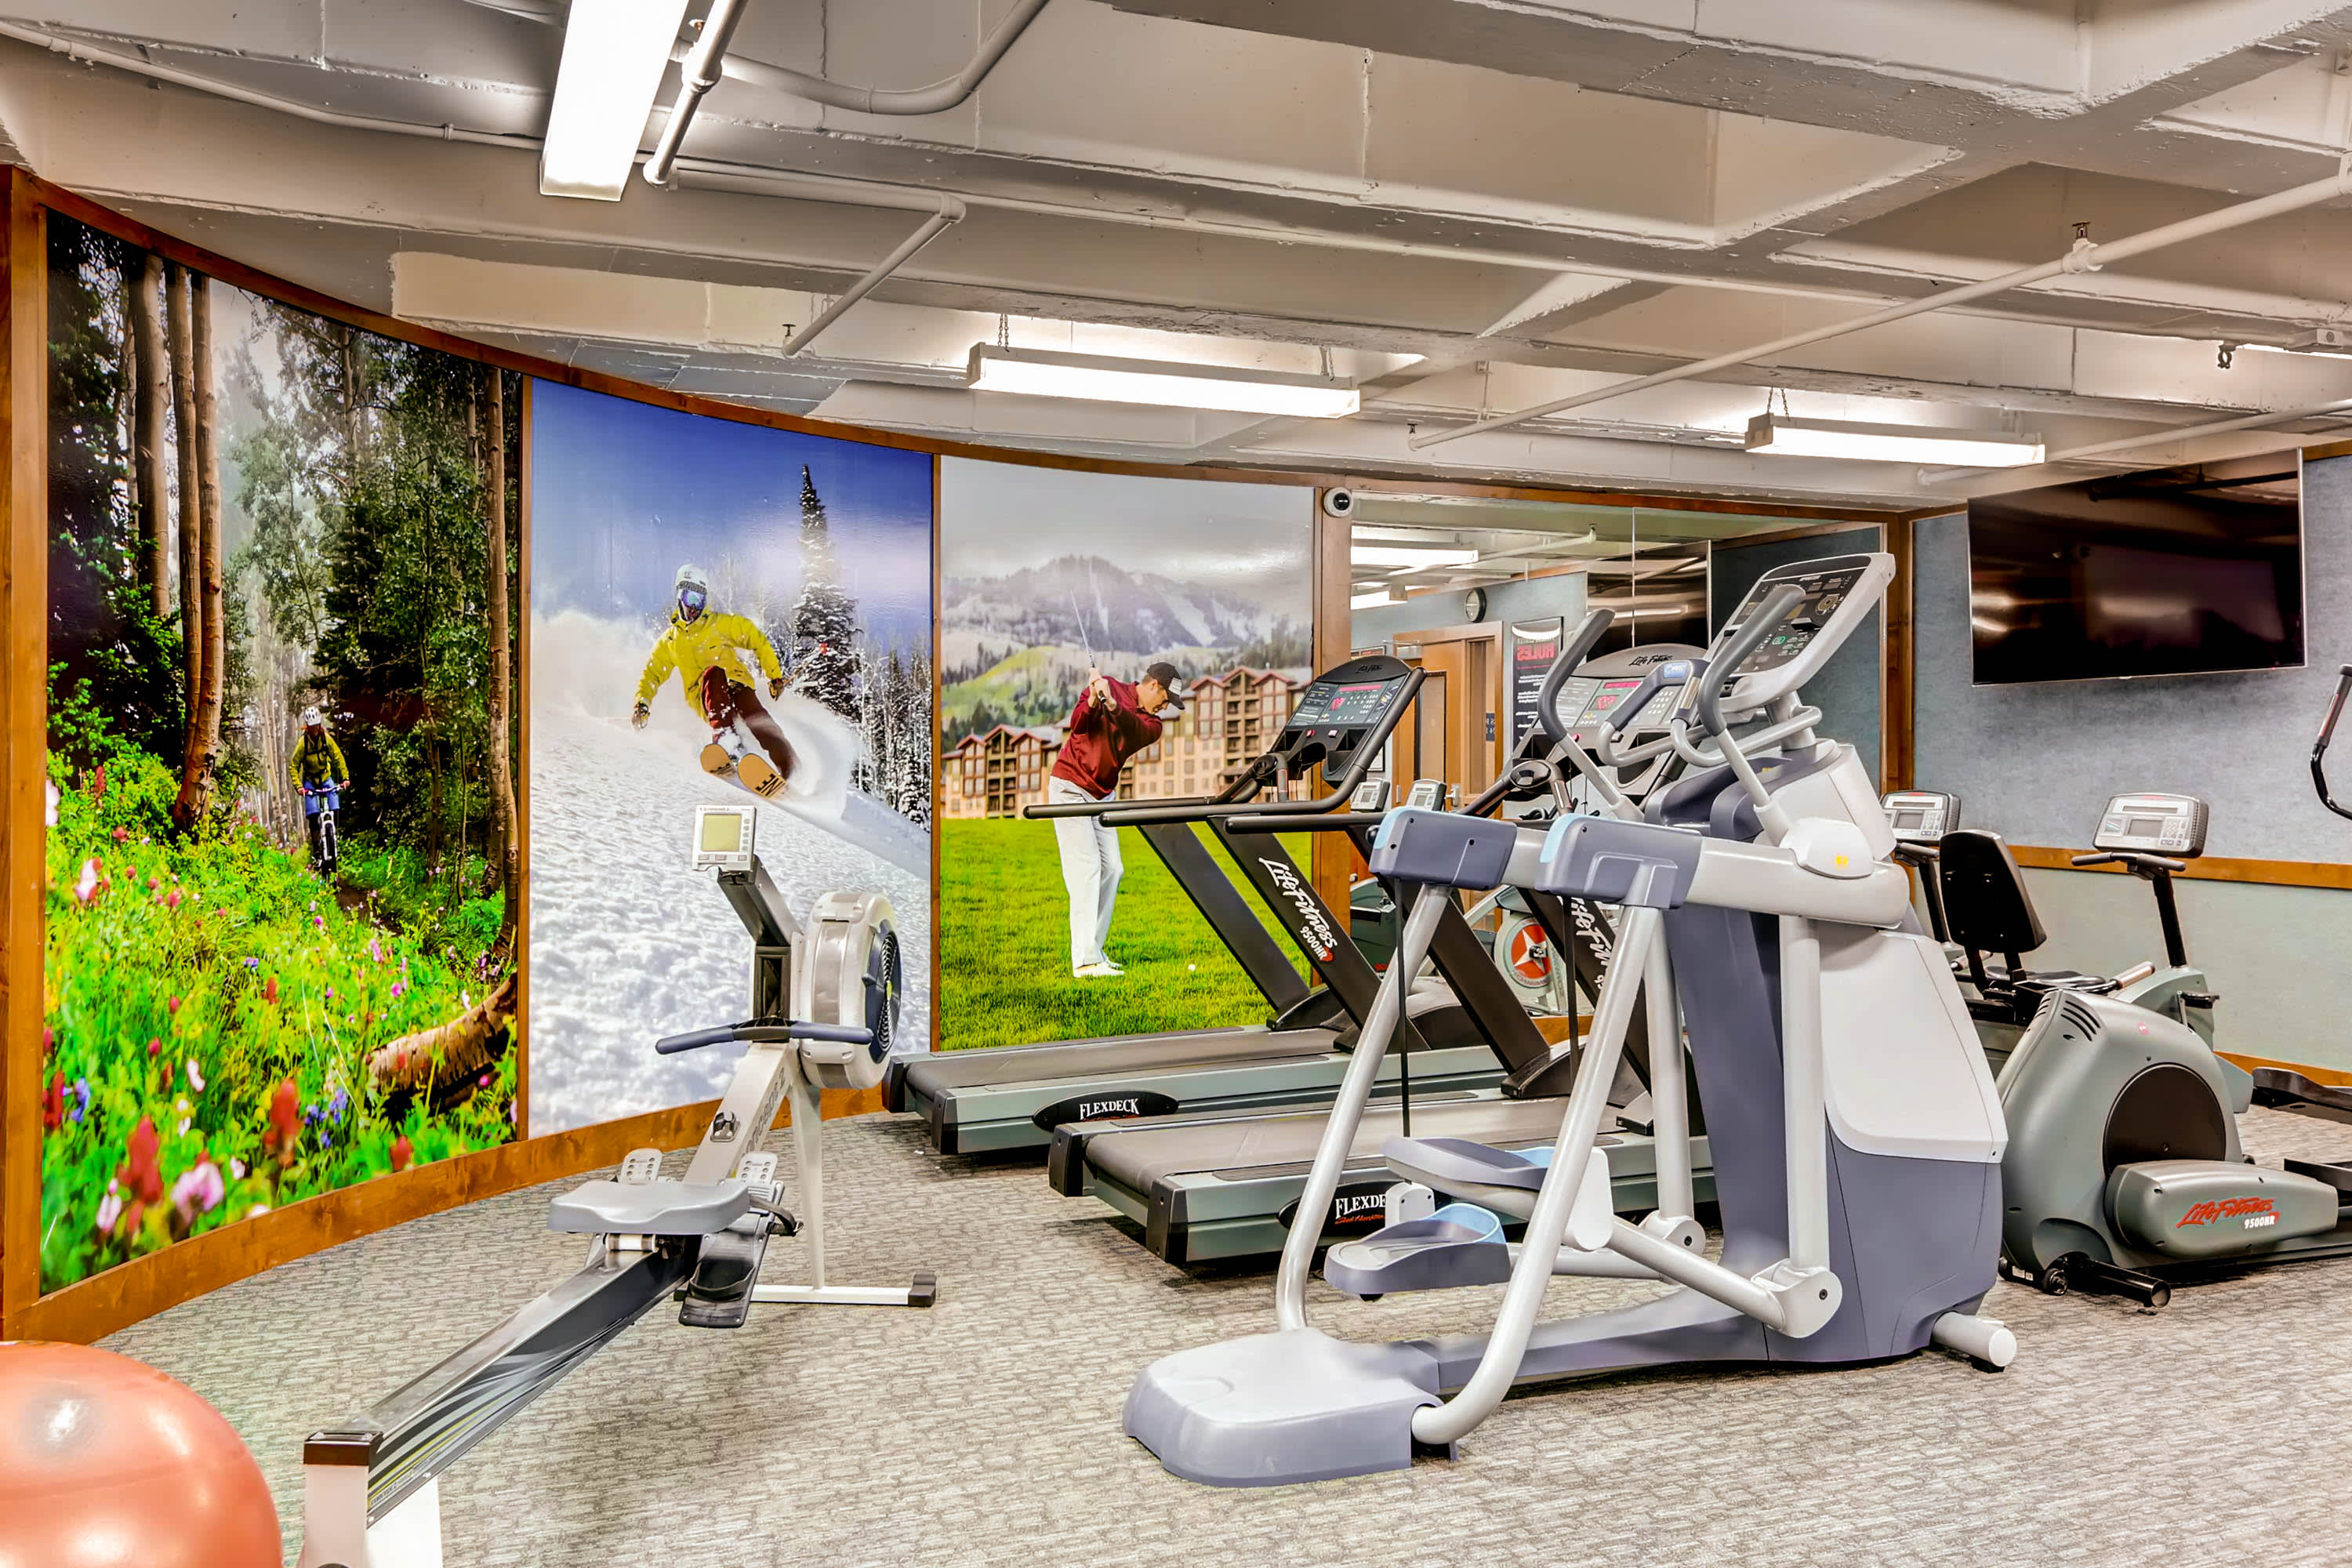 Access to the fitness facility is included for all guests.